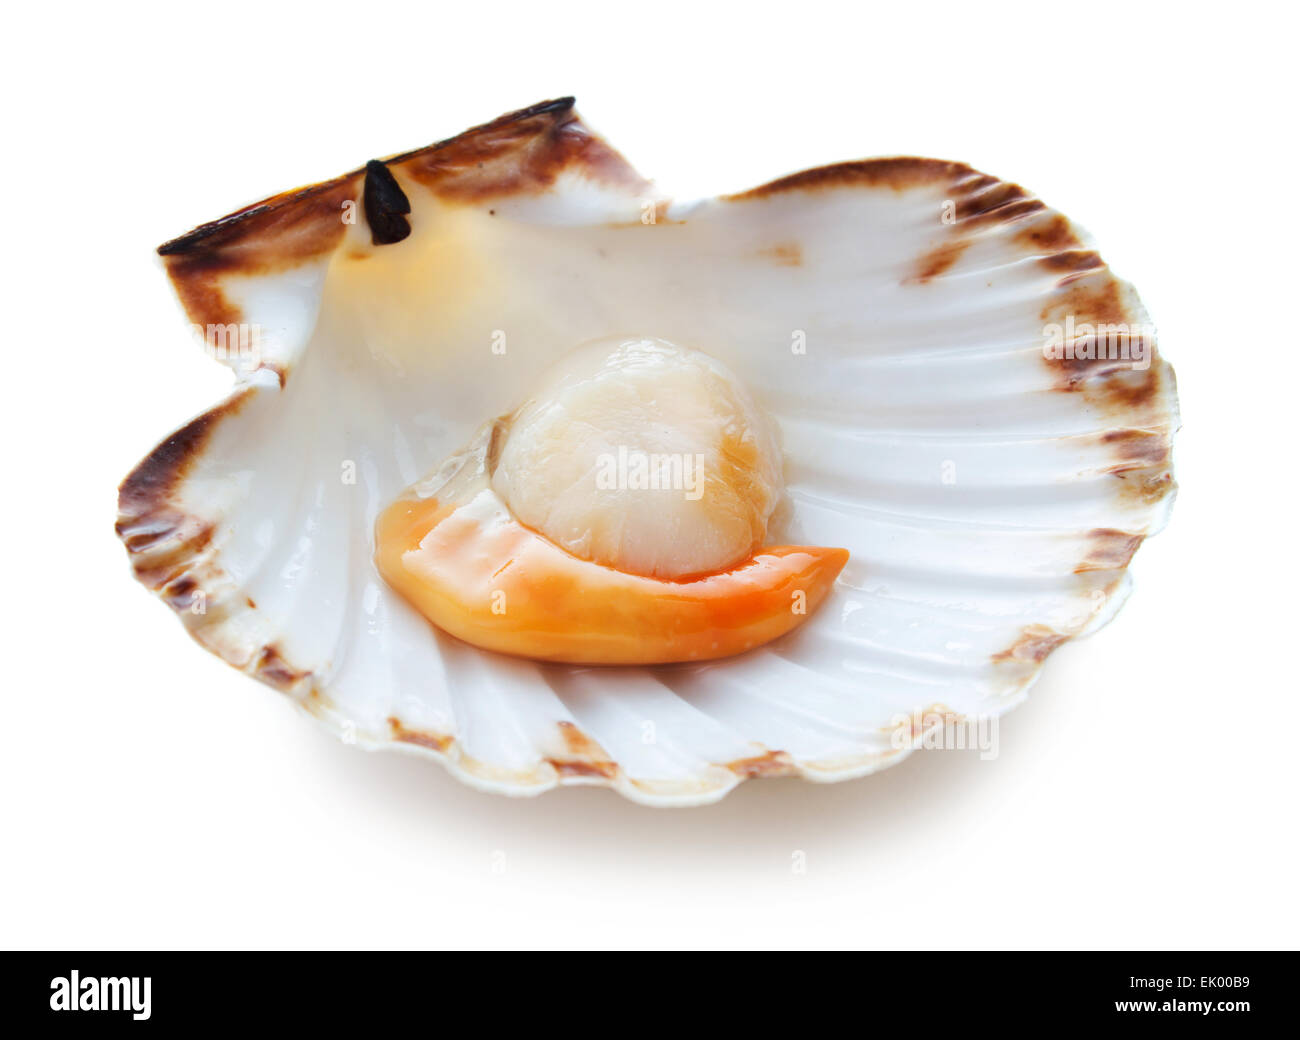 Raw Scallop Stock Photos & Raw Scallop Stock Images - Alamy